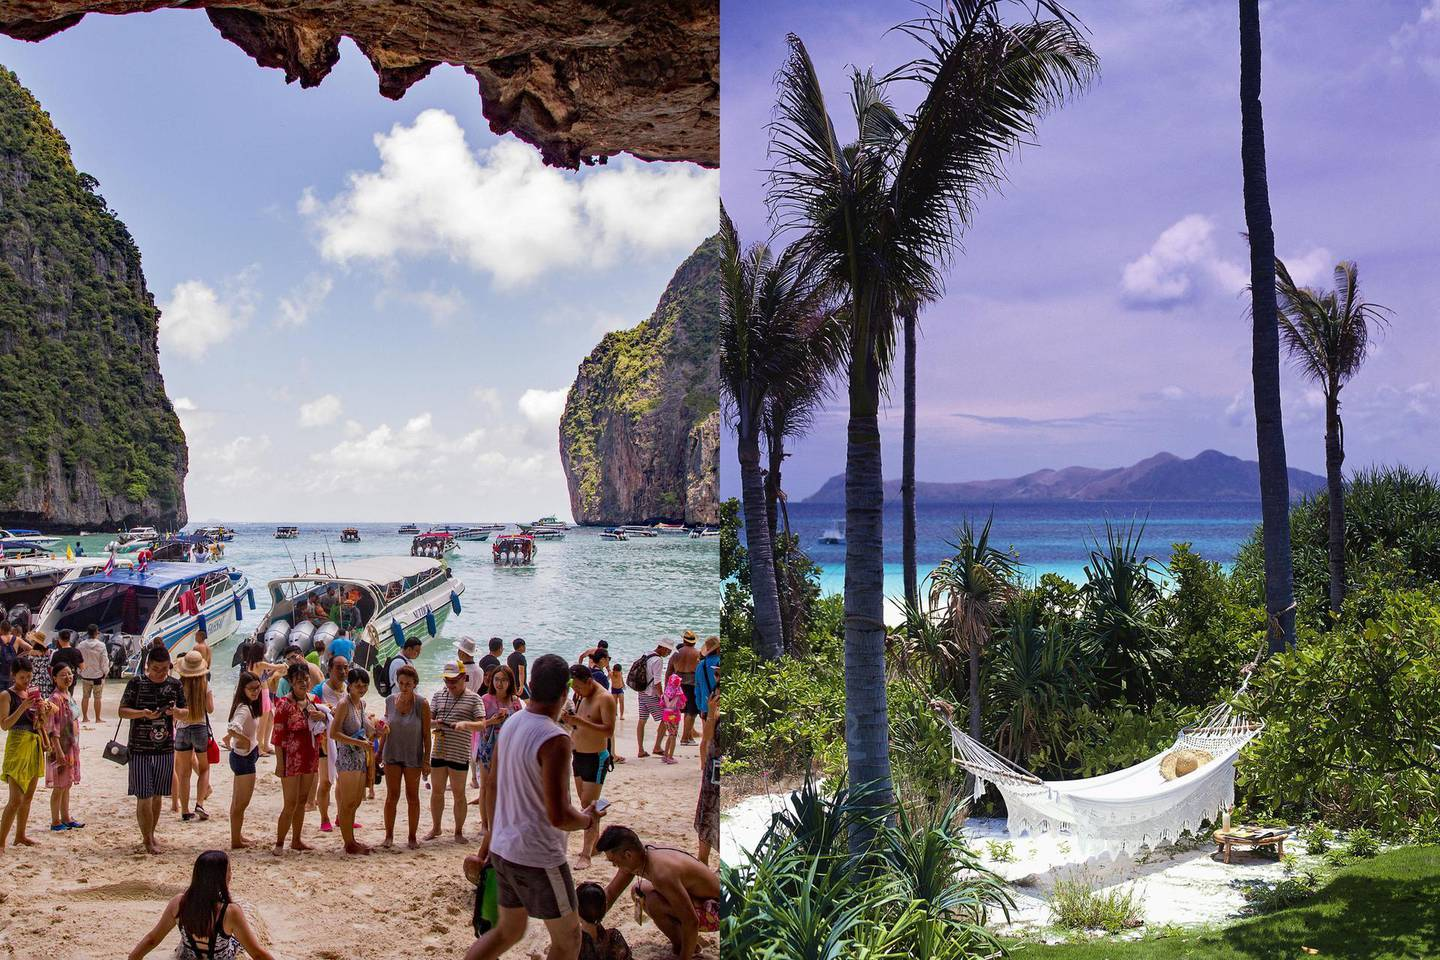 Maya Bay Beach, Ko Phi Phi Le Island, Thailand, are overcrowded with tourists because it is now a honeypot or bucket list tourism destination. Harry Green / Alamy Stock PhotoPalawan -